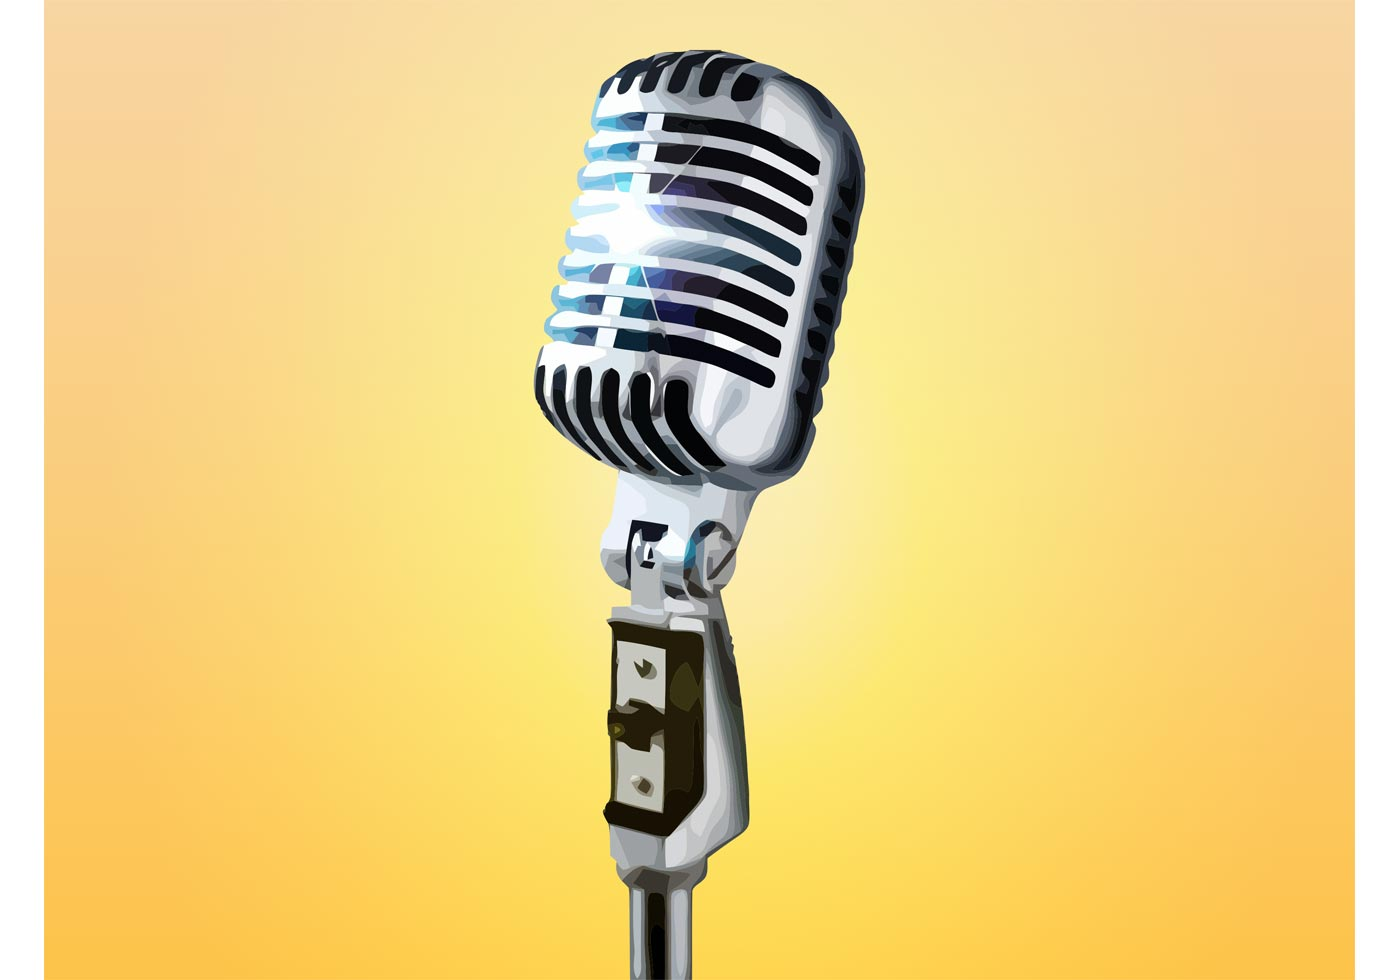 Microphone - Download Free Vector Art, Stock Graphics & Images